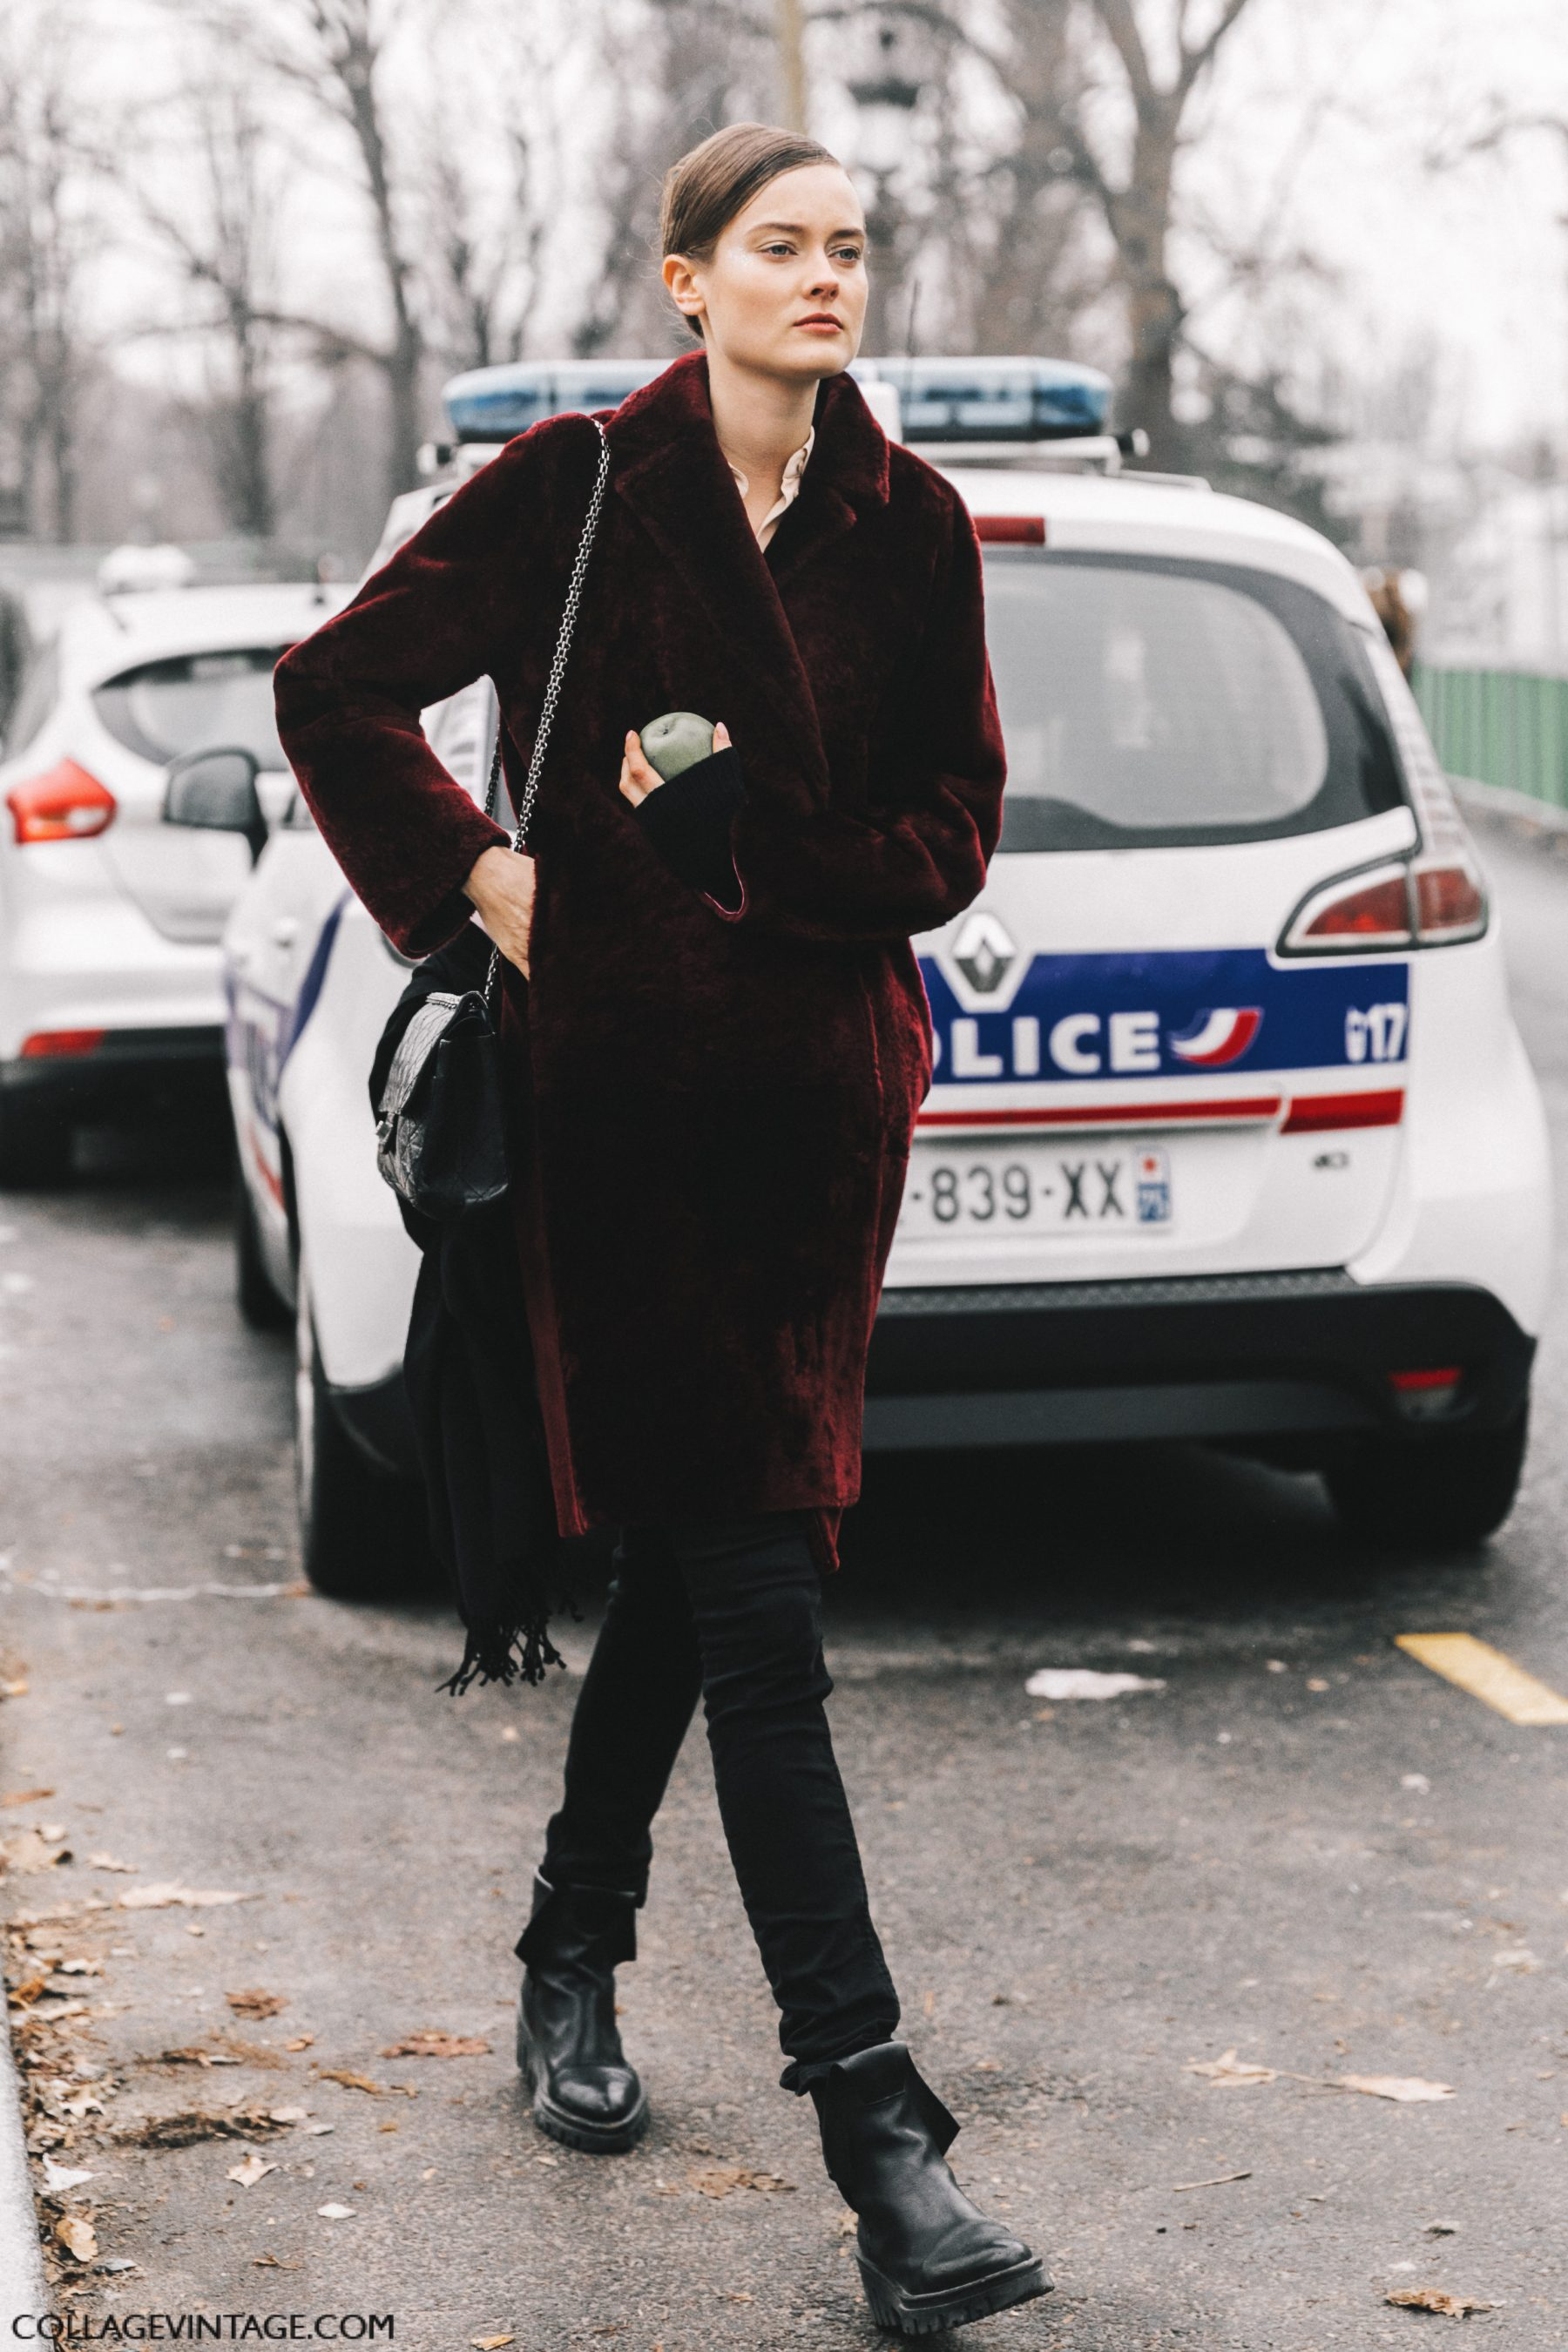 Couture_Paris_Fashion_Week-PFW-Street_Style-Chanel-Vetements-Outfit-Collage_Vintage-148-1800x2700